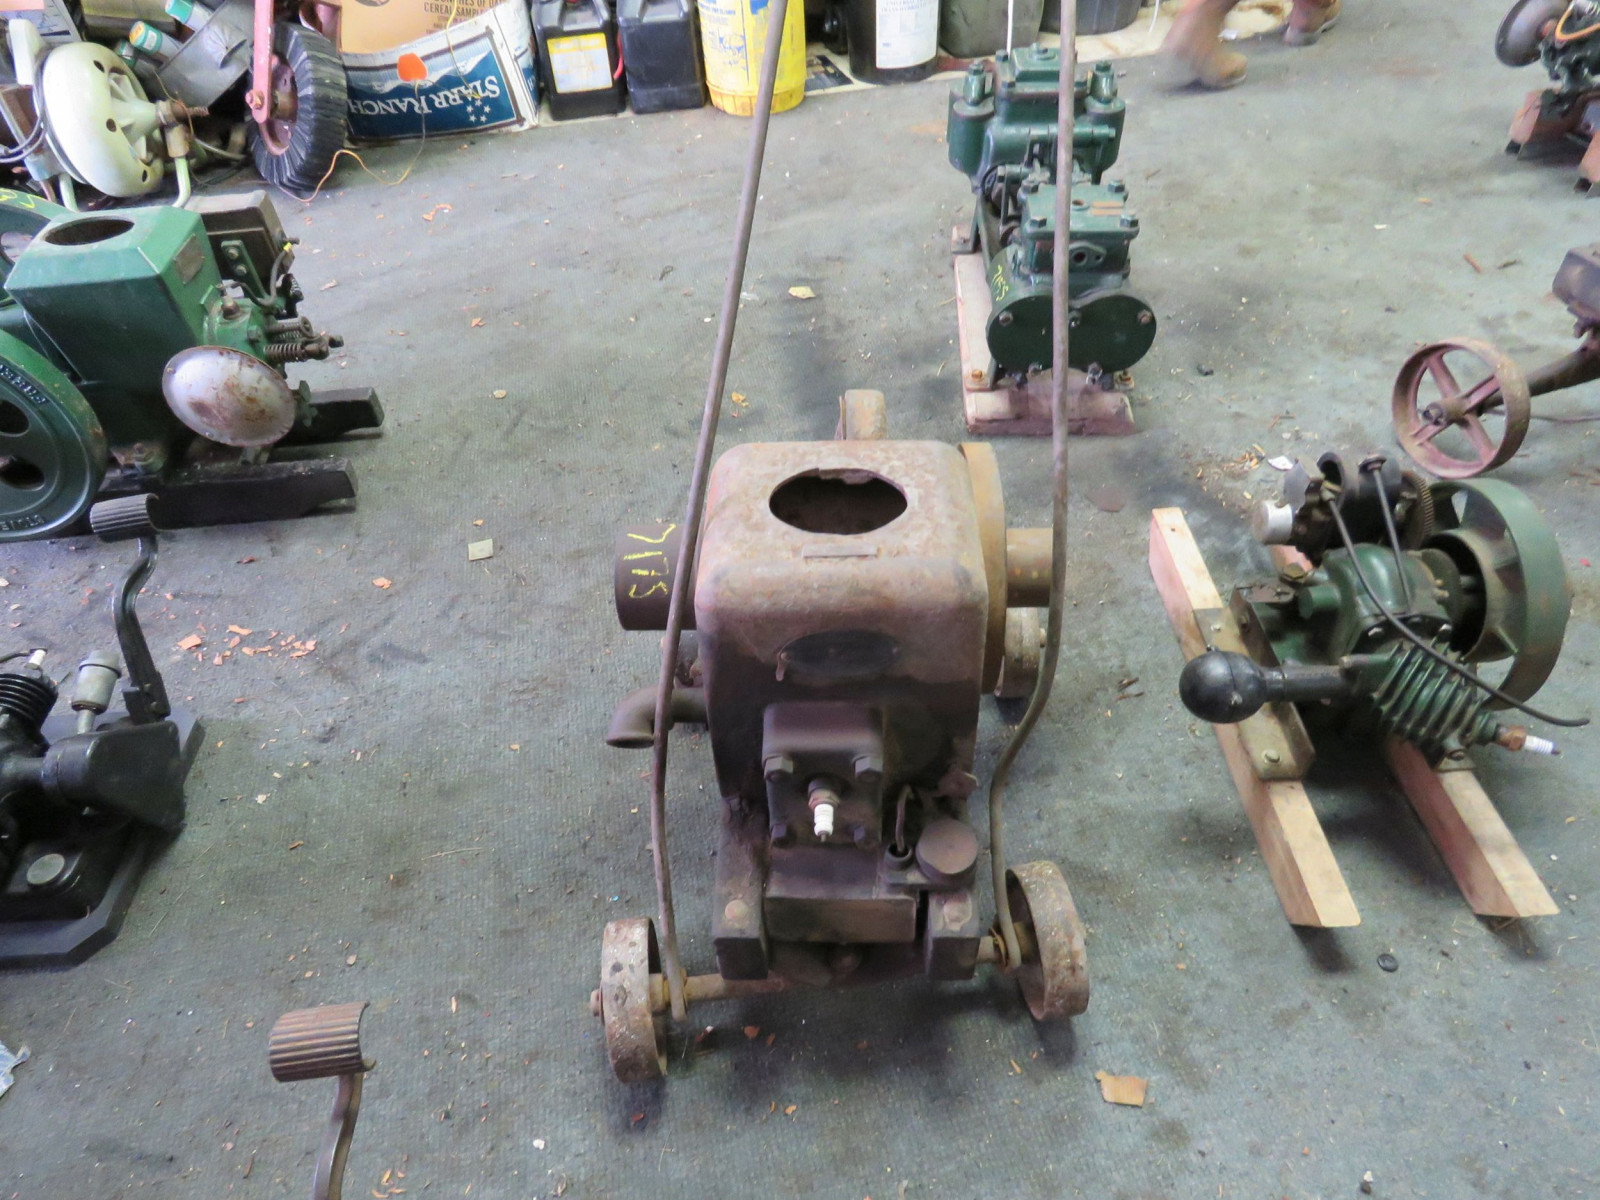 Fairbanks Morse Type Z 1 1/2 Hp Stationary gas engine - Image 3